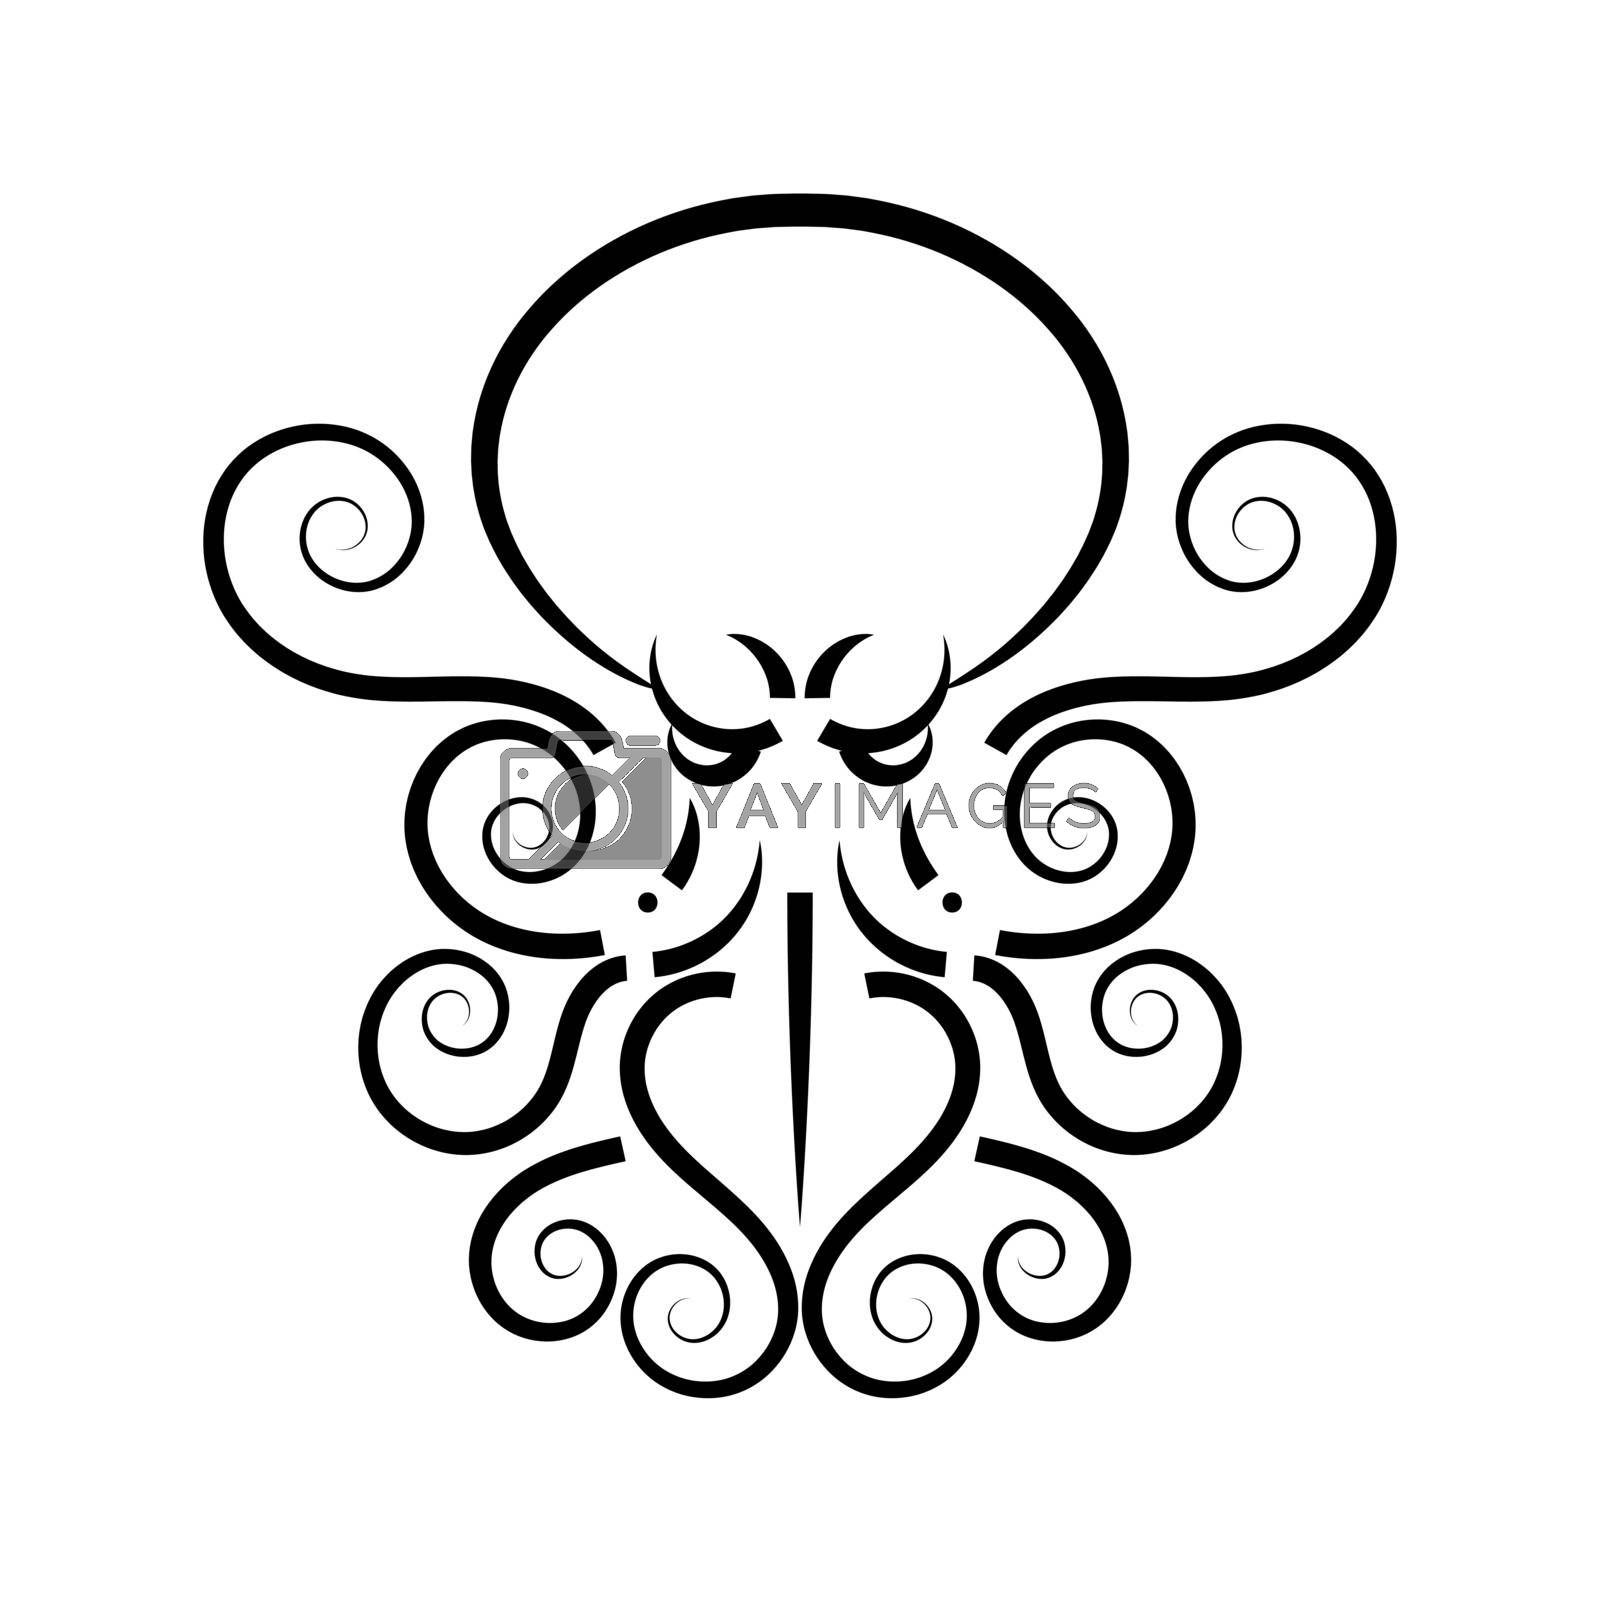 Octopus. Vector black engraving vintage illustrations. Isolated on white background.